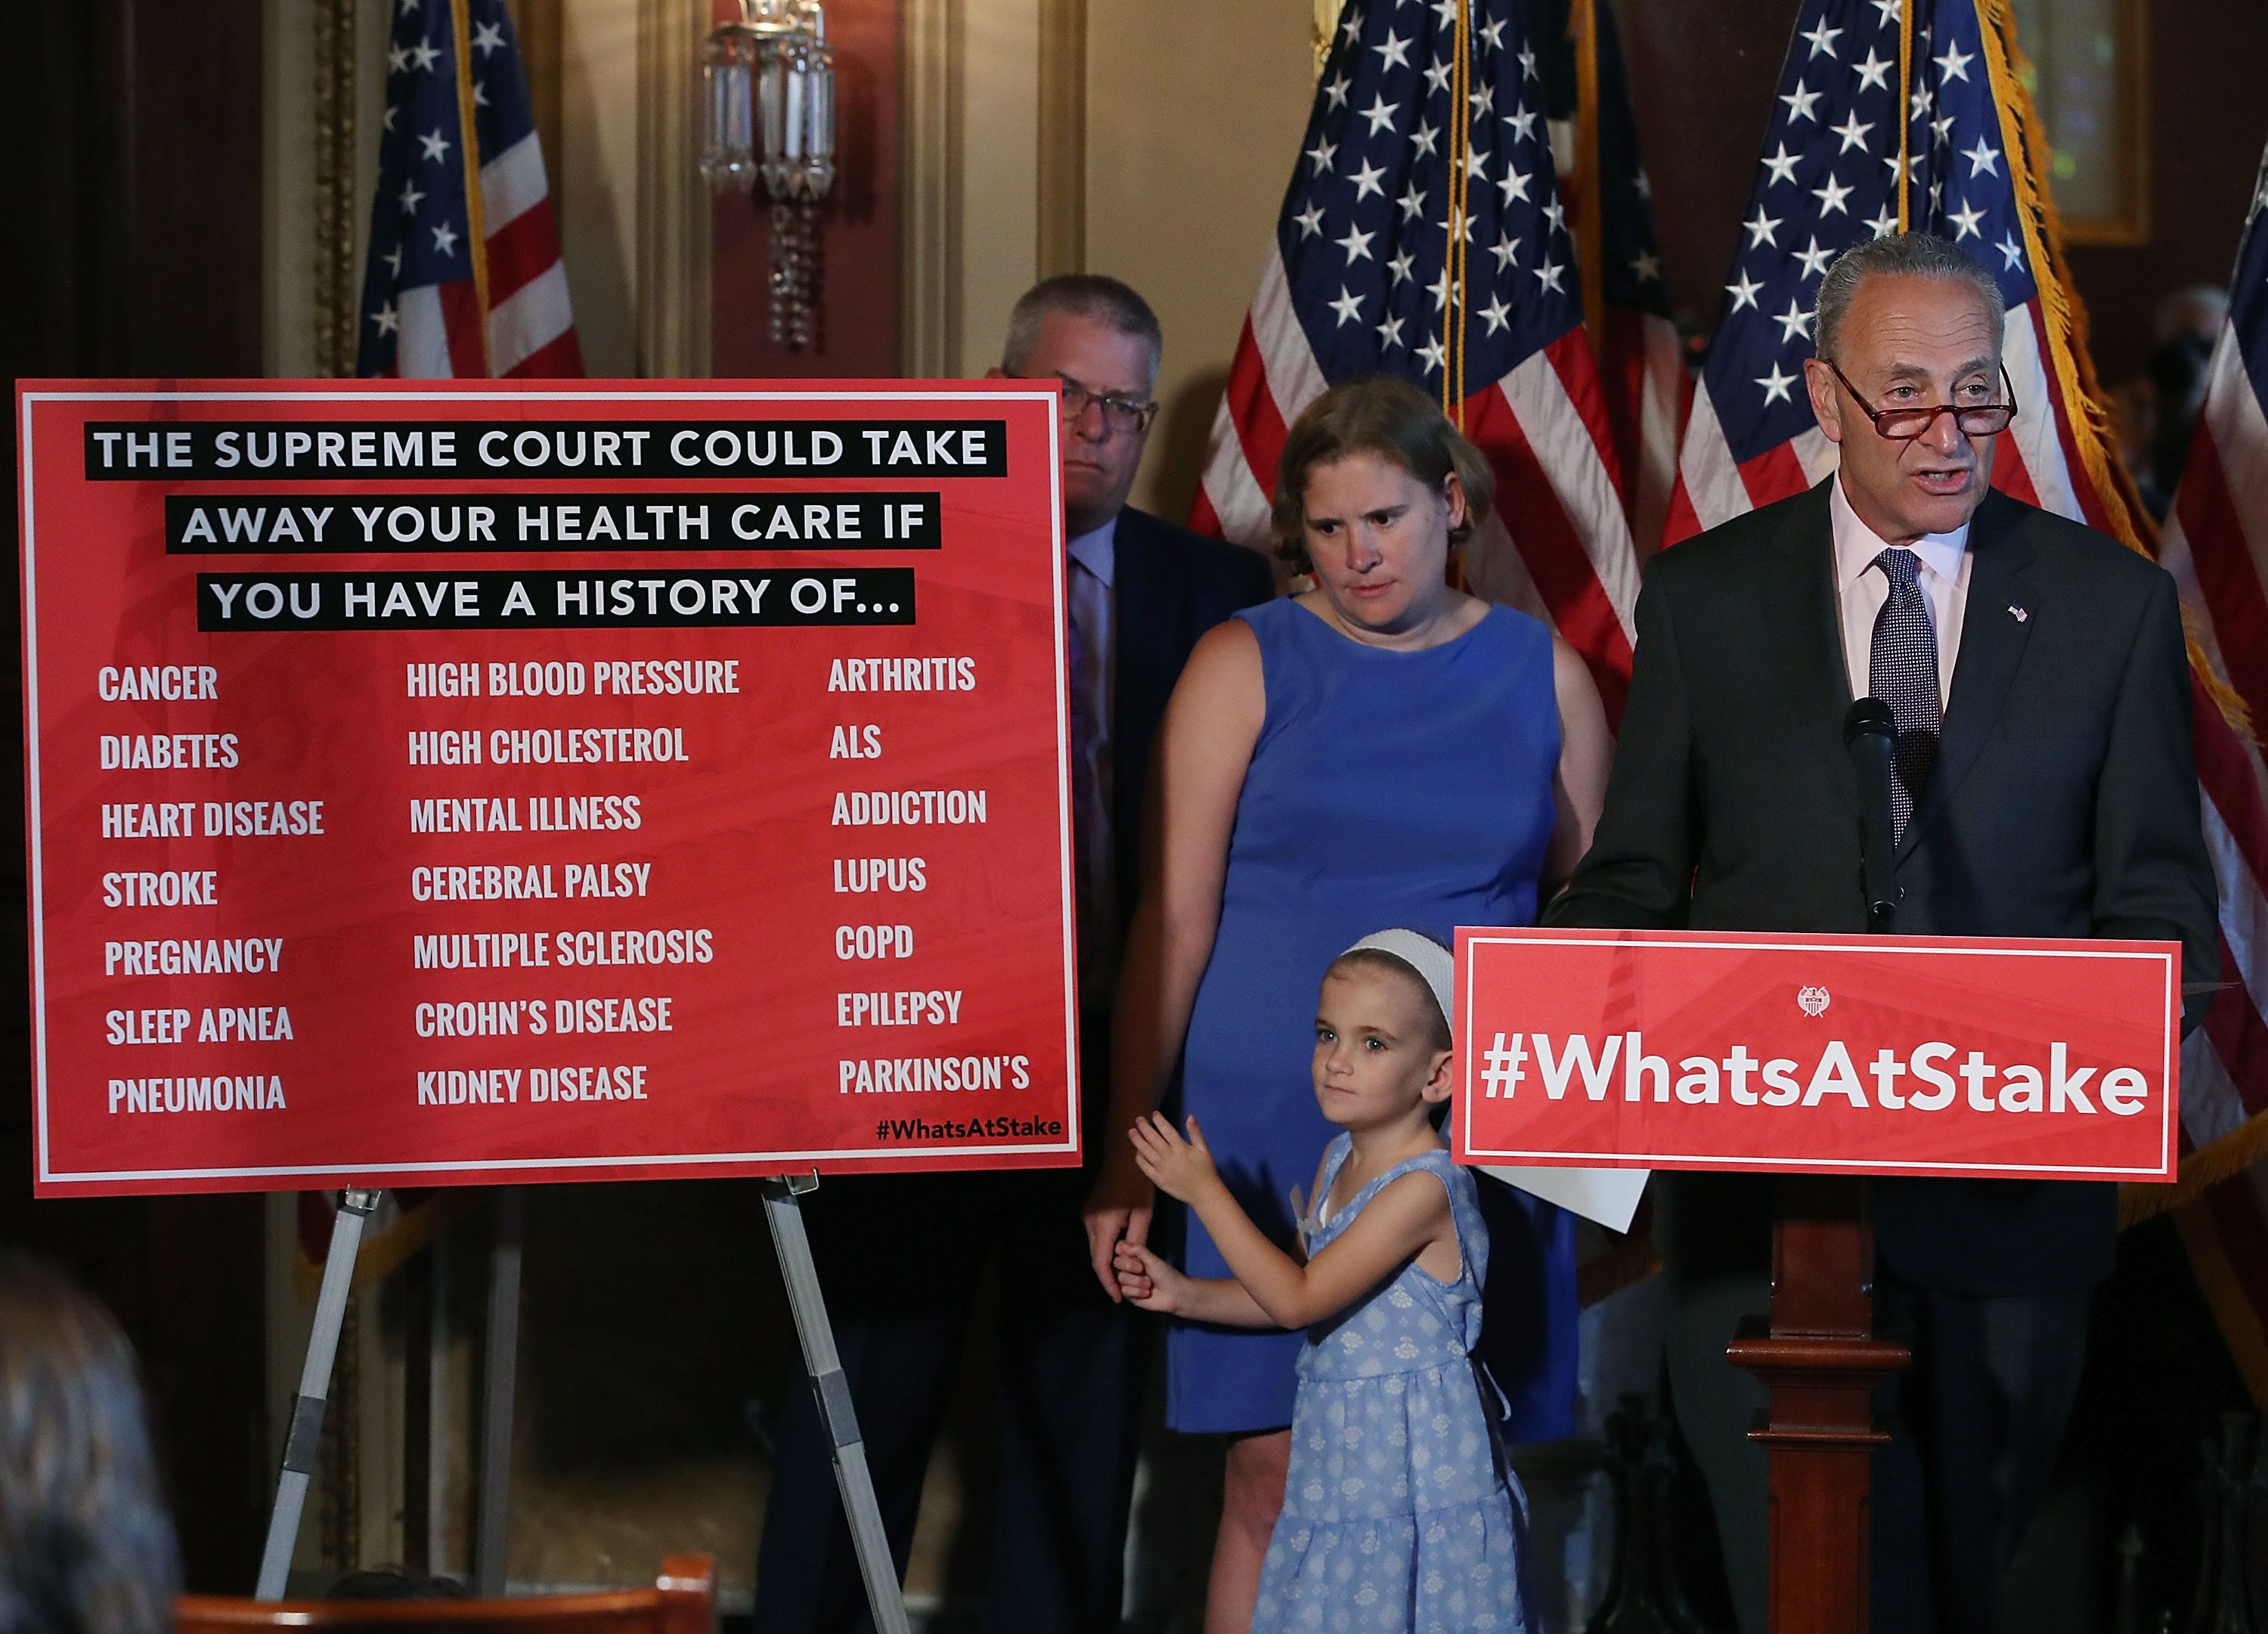 WASHINGTON, DC - JULY 11: Senate Minority Leader Chuck Schumer (D-NY) speaks about healthcare while flanked by 6 yo Charlie Wood who has complex medical needs from being born 3 months early, during a news conference on Capitol Hill, on July 11, 2018 in Washington, DC. Schumer urged Senate Republicans not to dismantle our current health care system that would leave millions of American families without access to affordable health care.  (Photo by Mark Wilson/Getty Images)